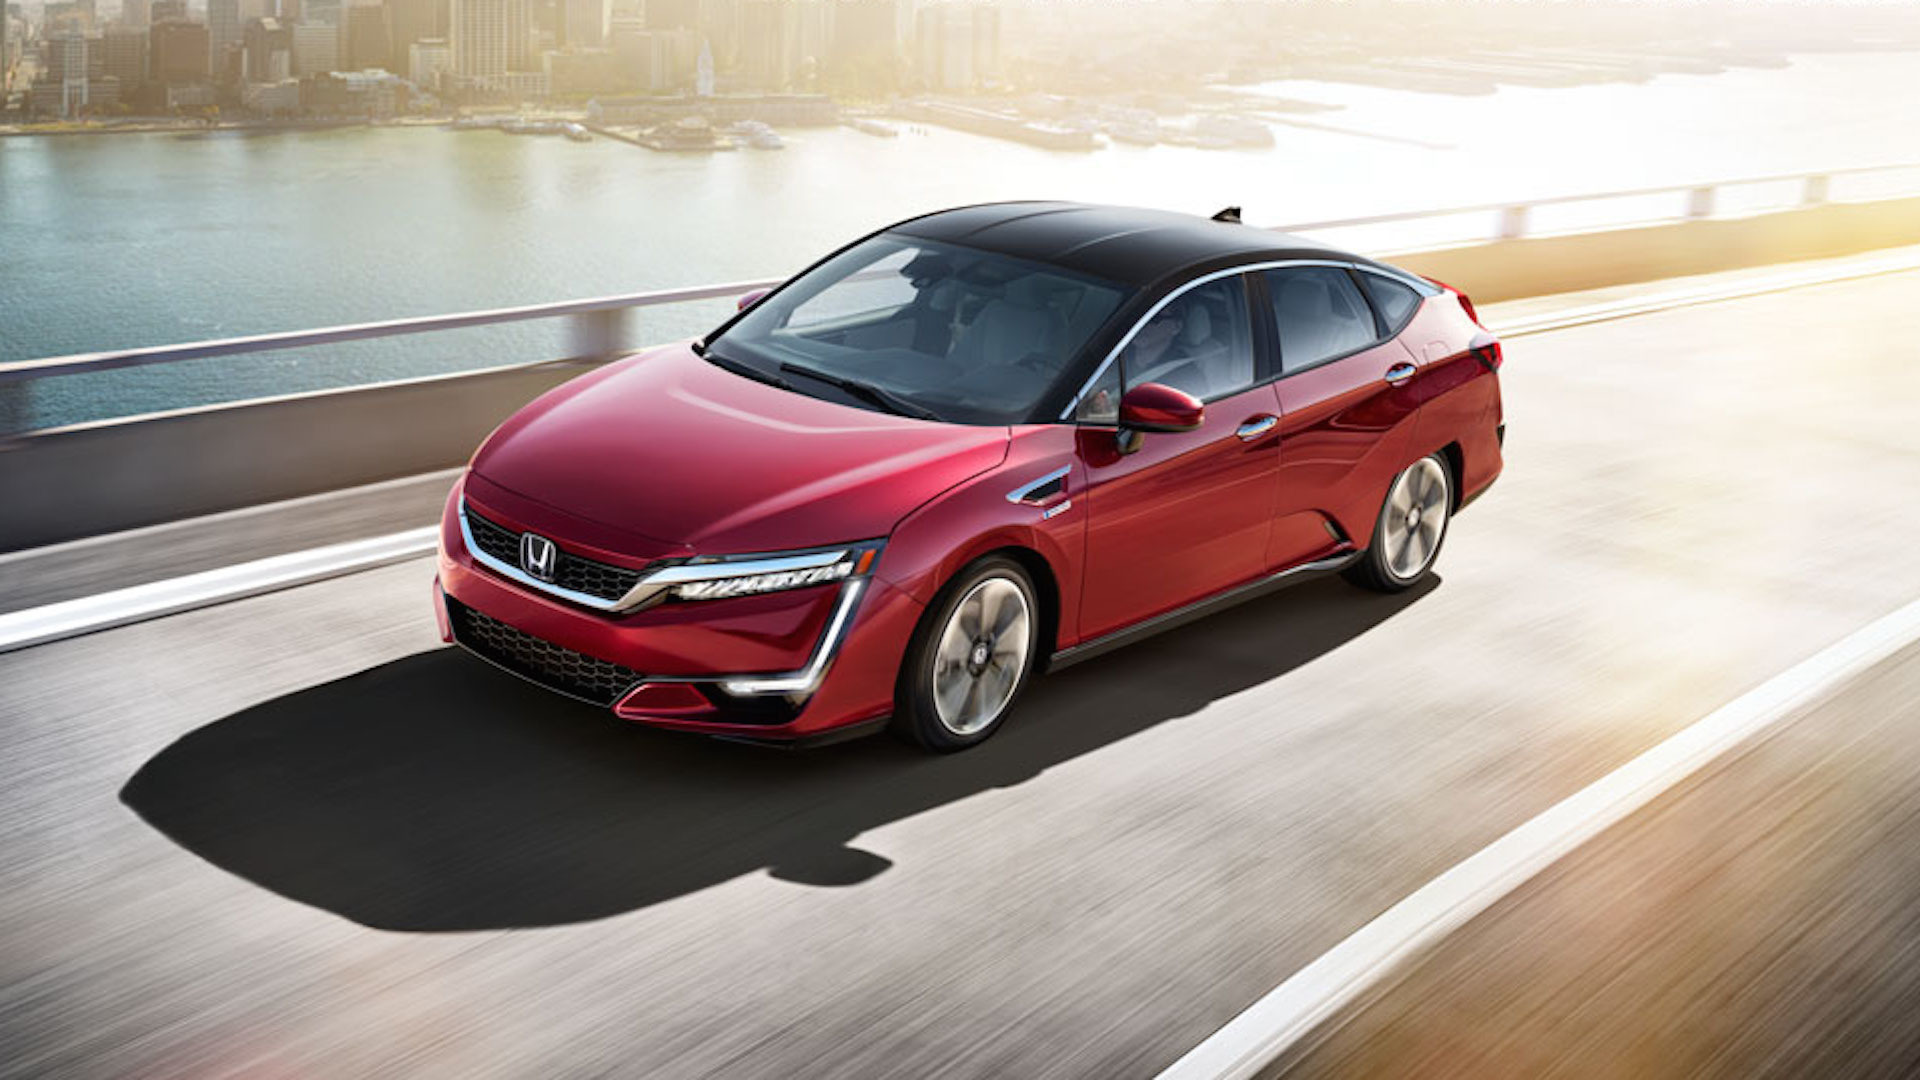 2017 Honda Clarity Fuel Cell Lease Price Includes 15k Of Hydrogen Fuel